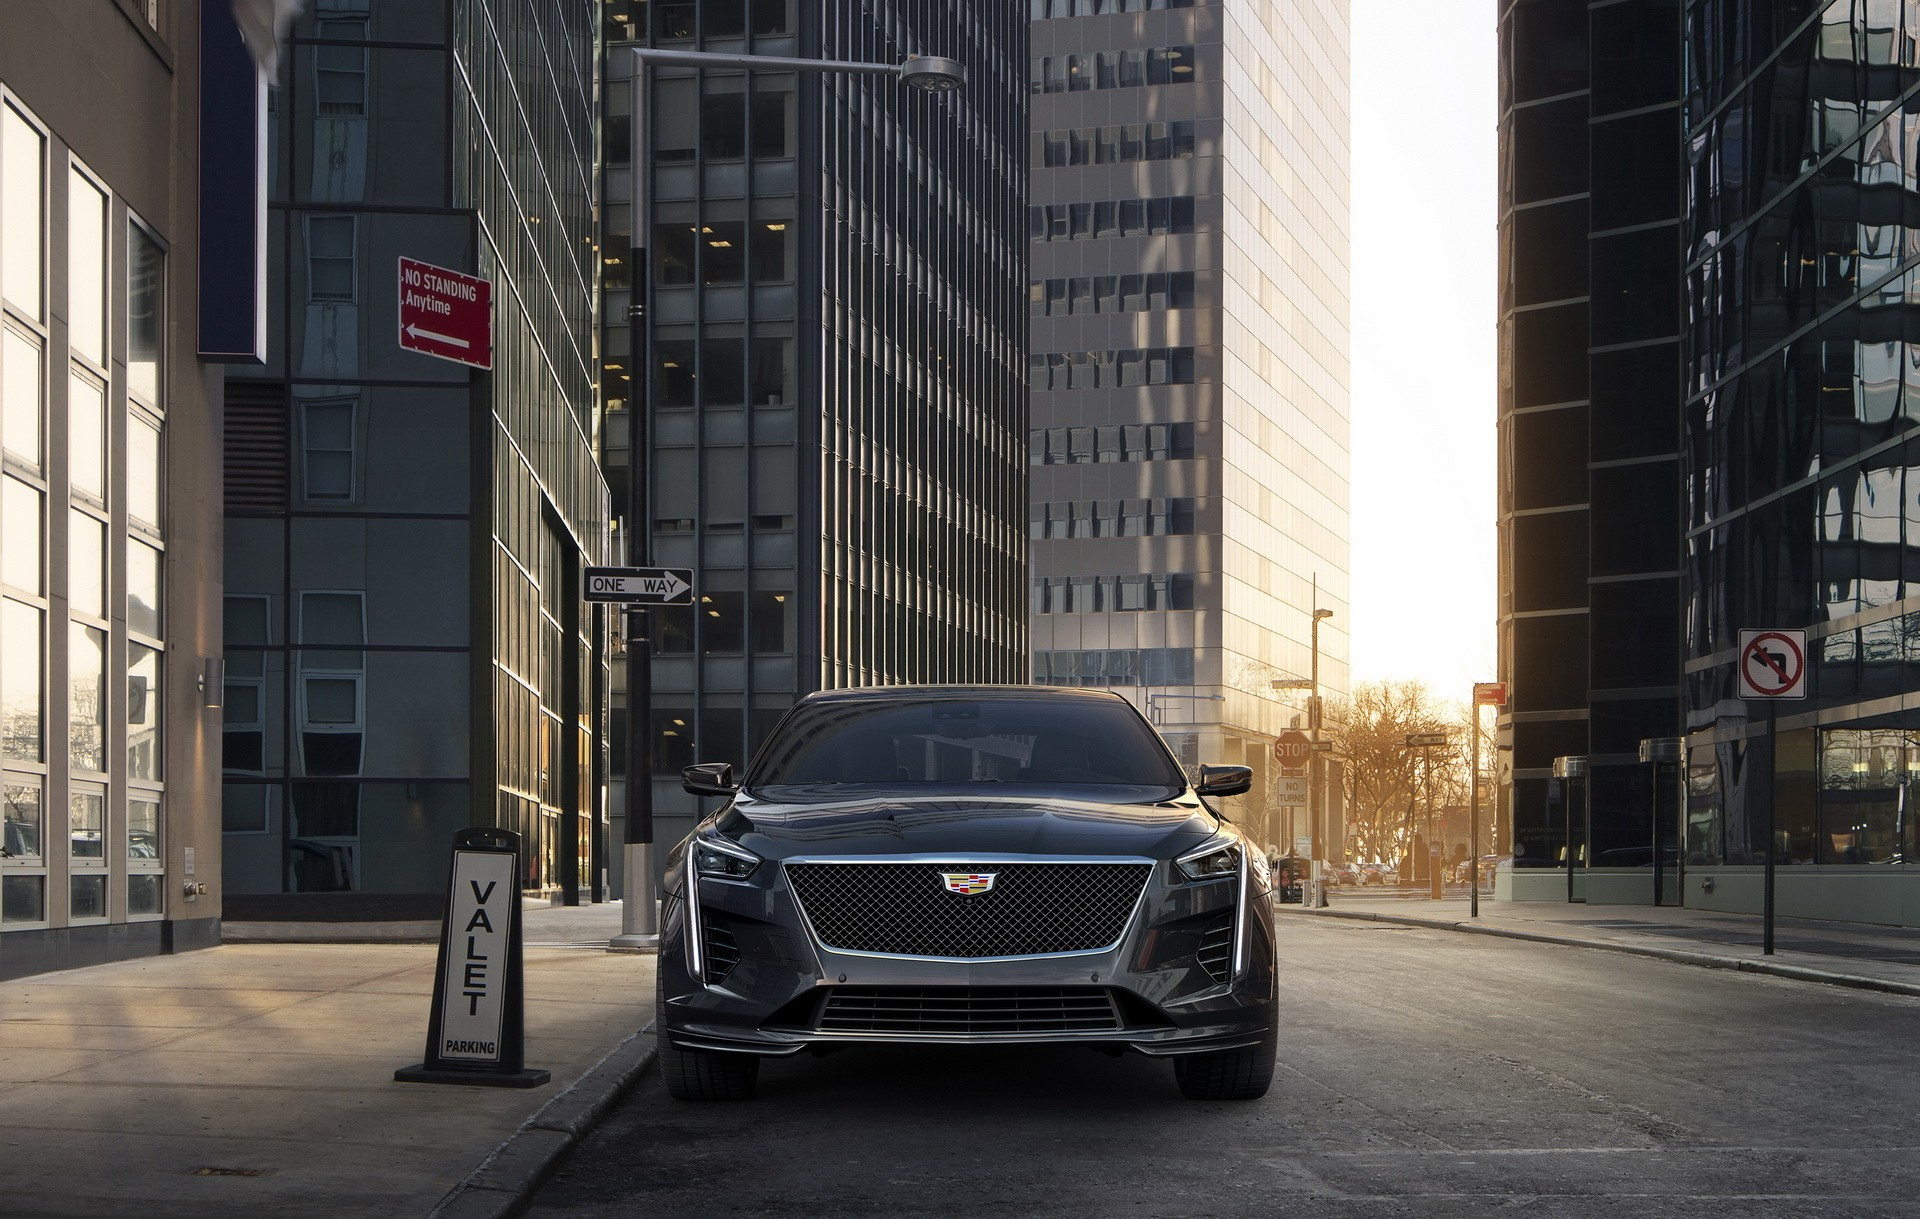 Mercedes Sports Cars Wallpapers 2019 Cadillac Ct6 V Sport Rendered As The Forbidden Luxury